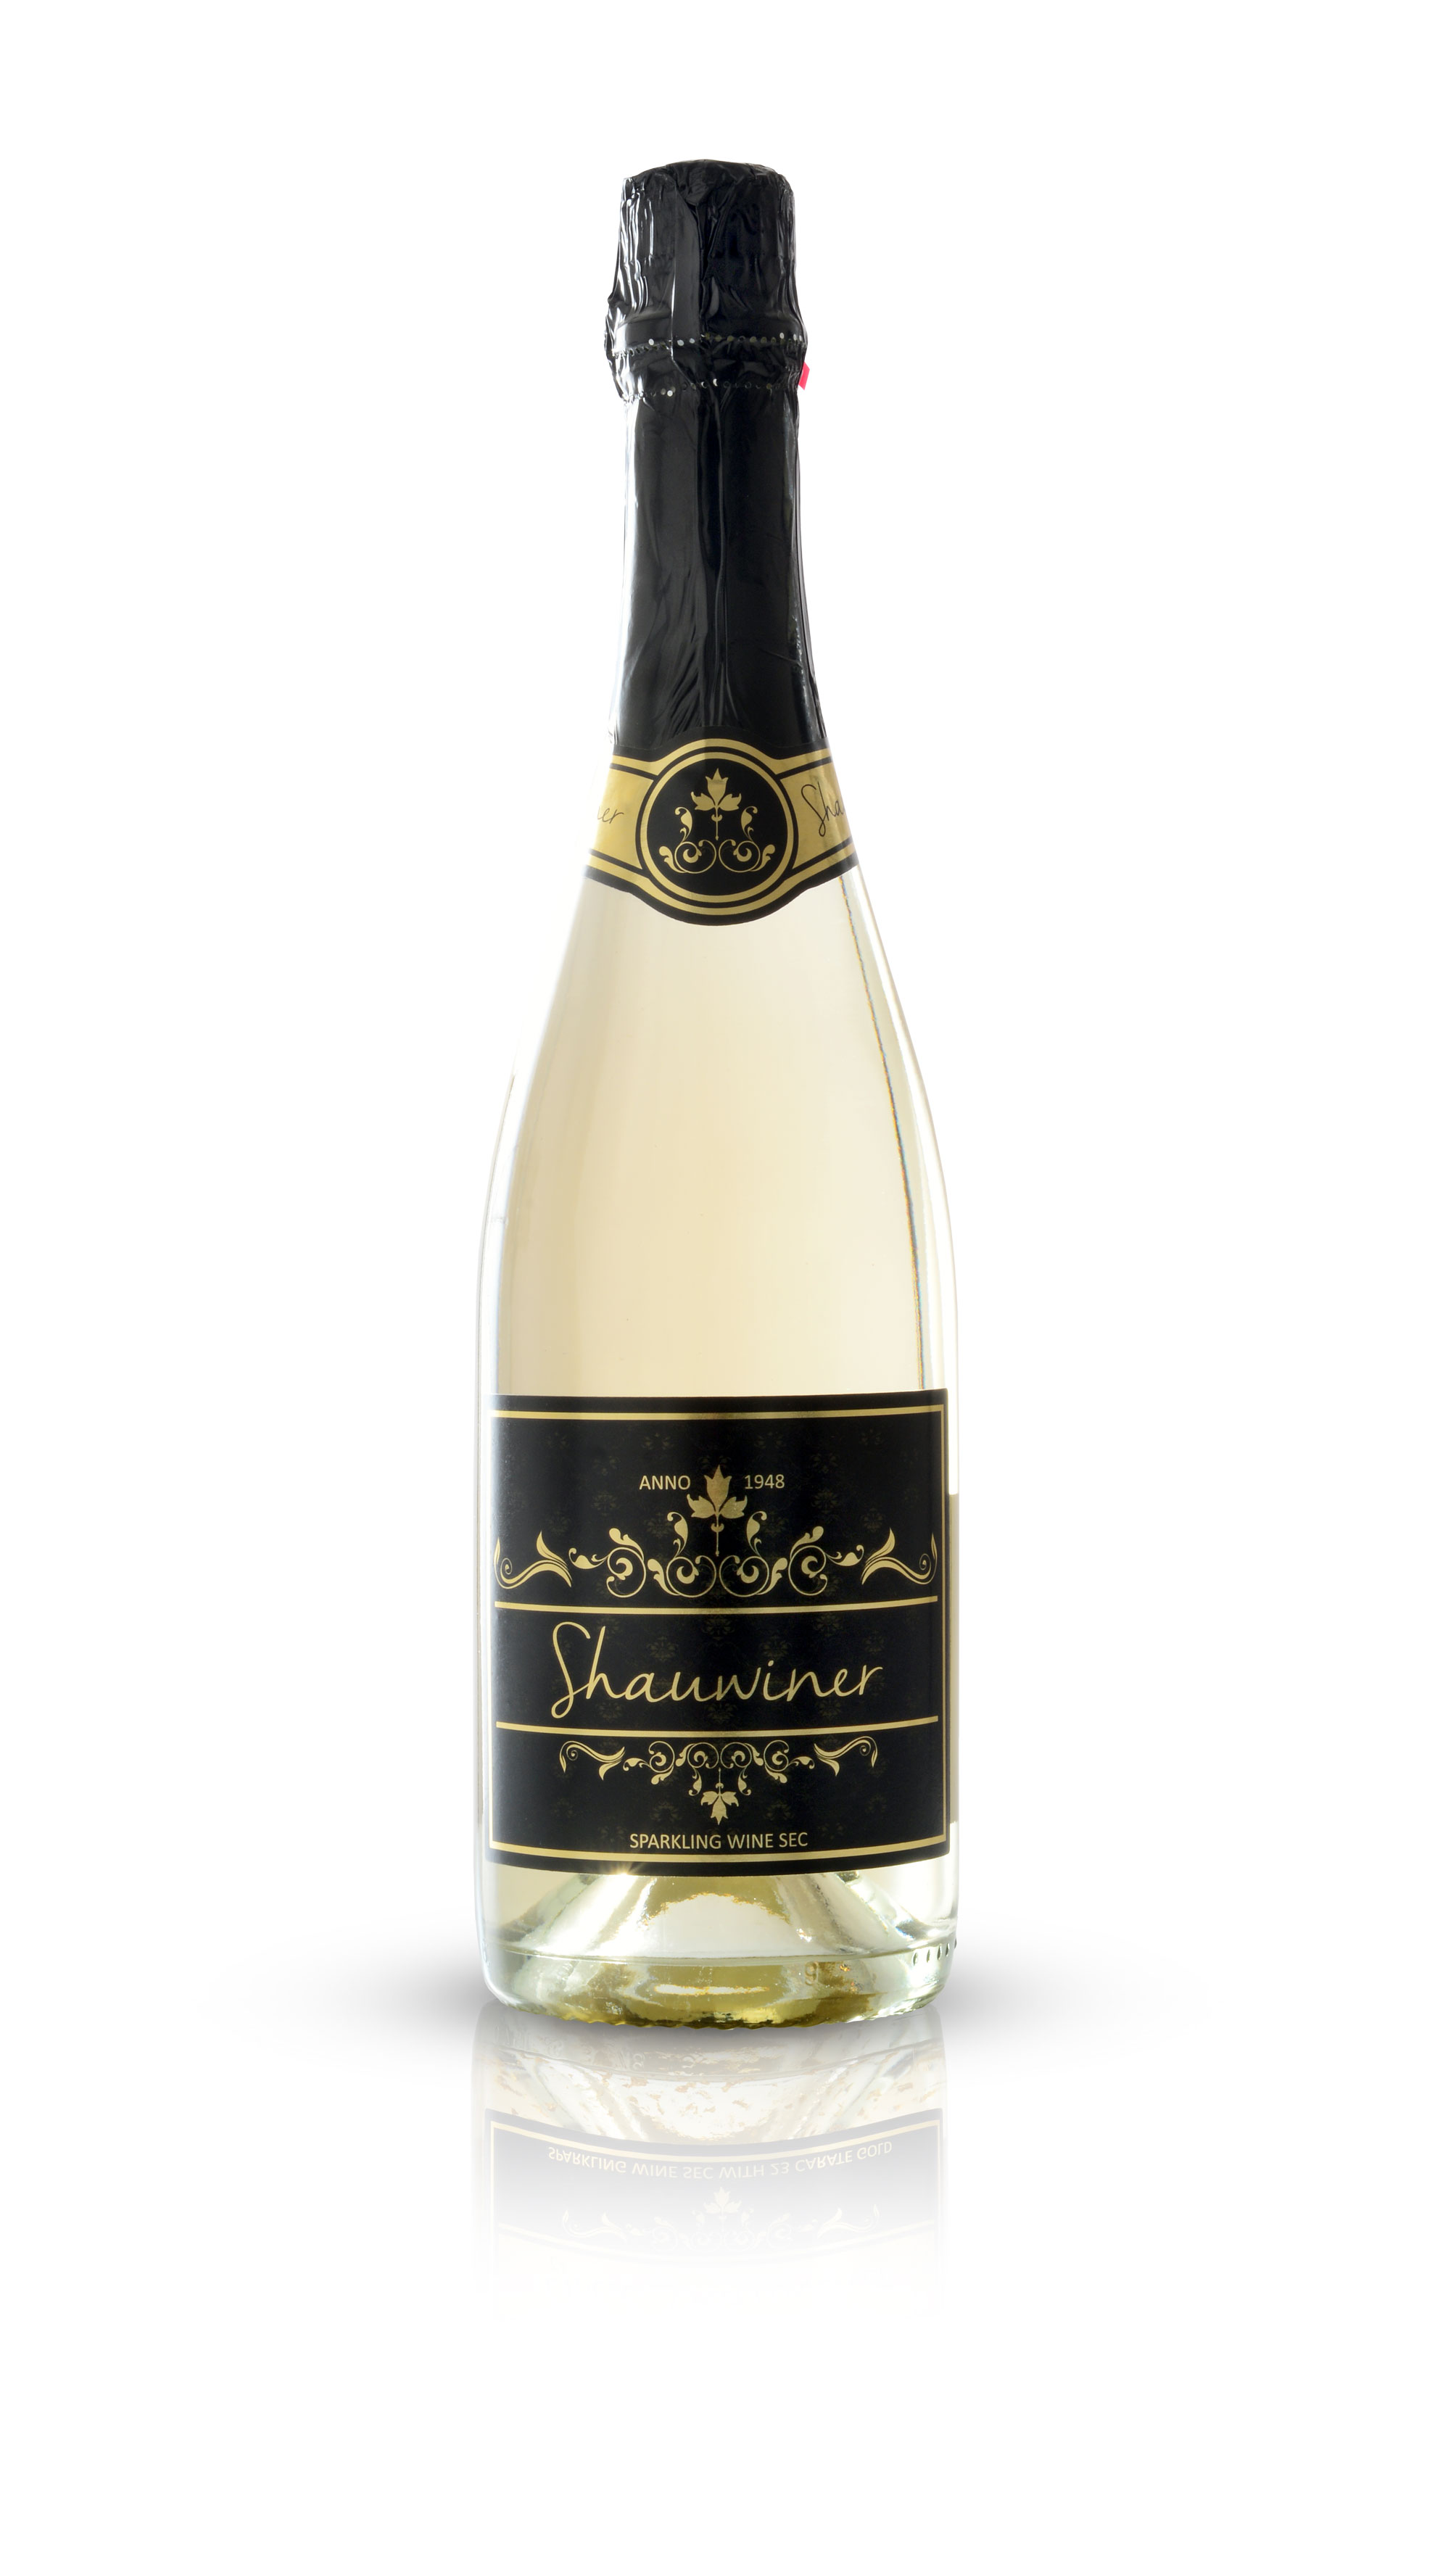 Shauwiner sparkling wine